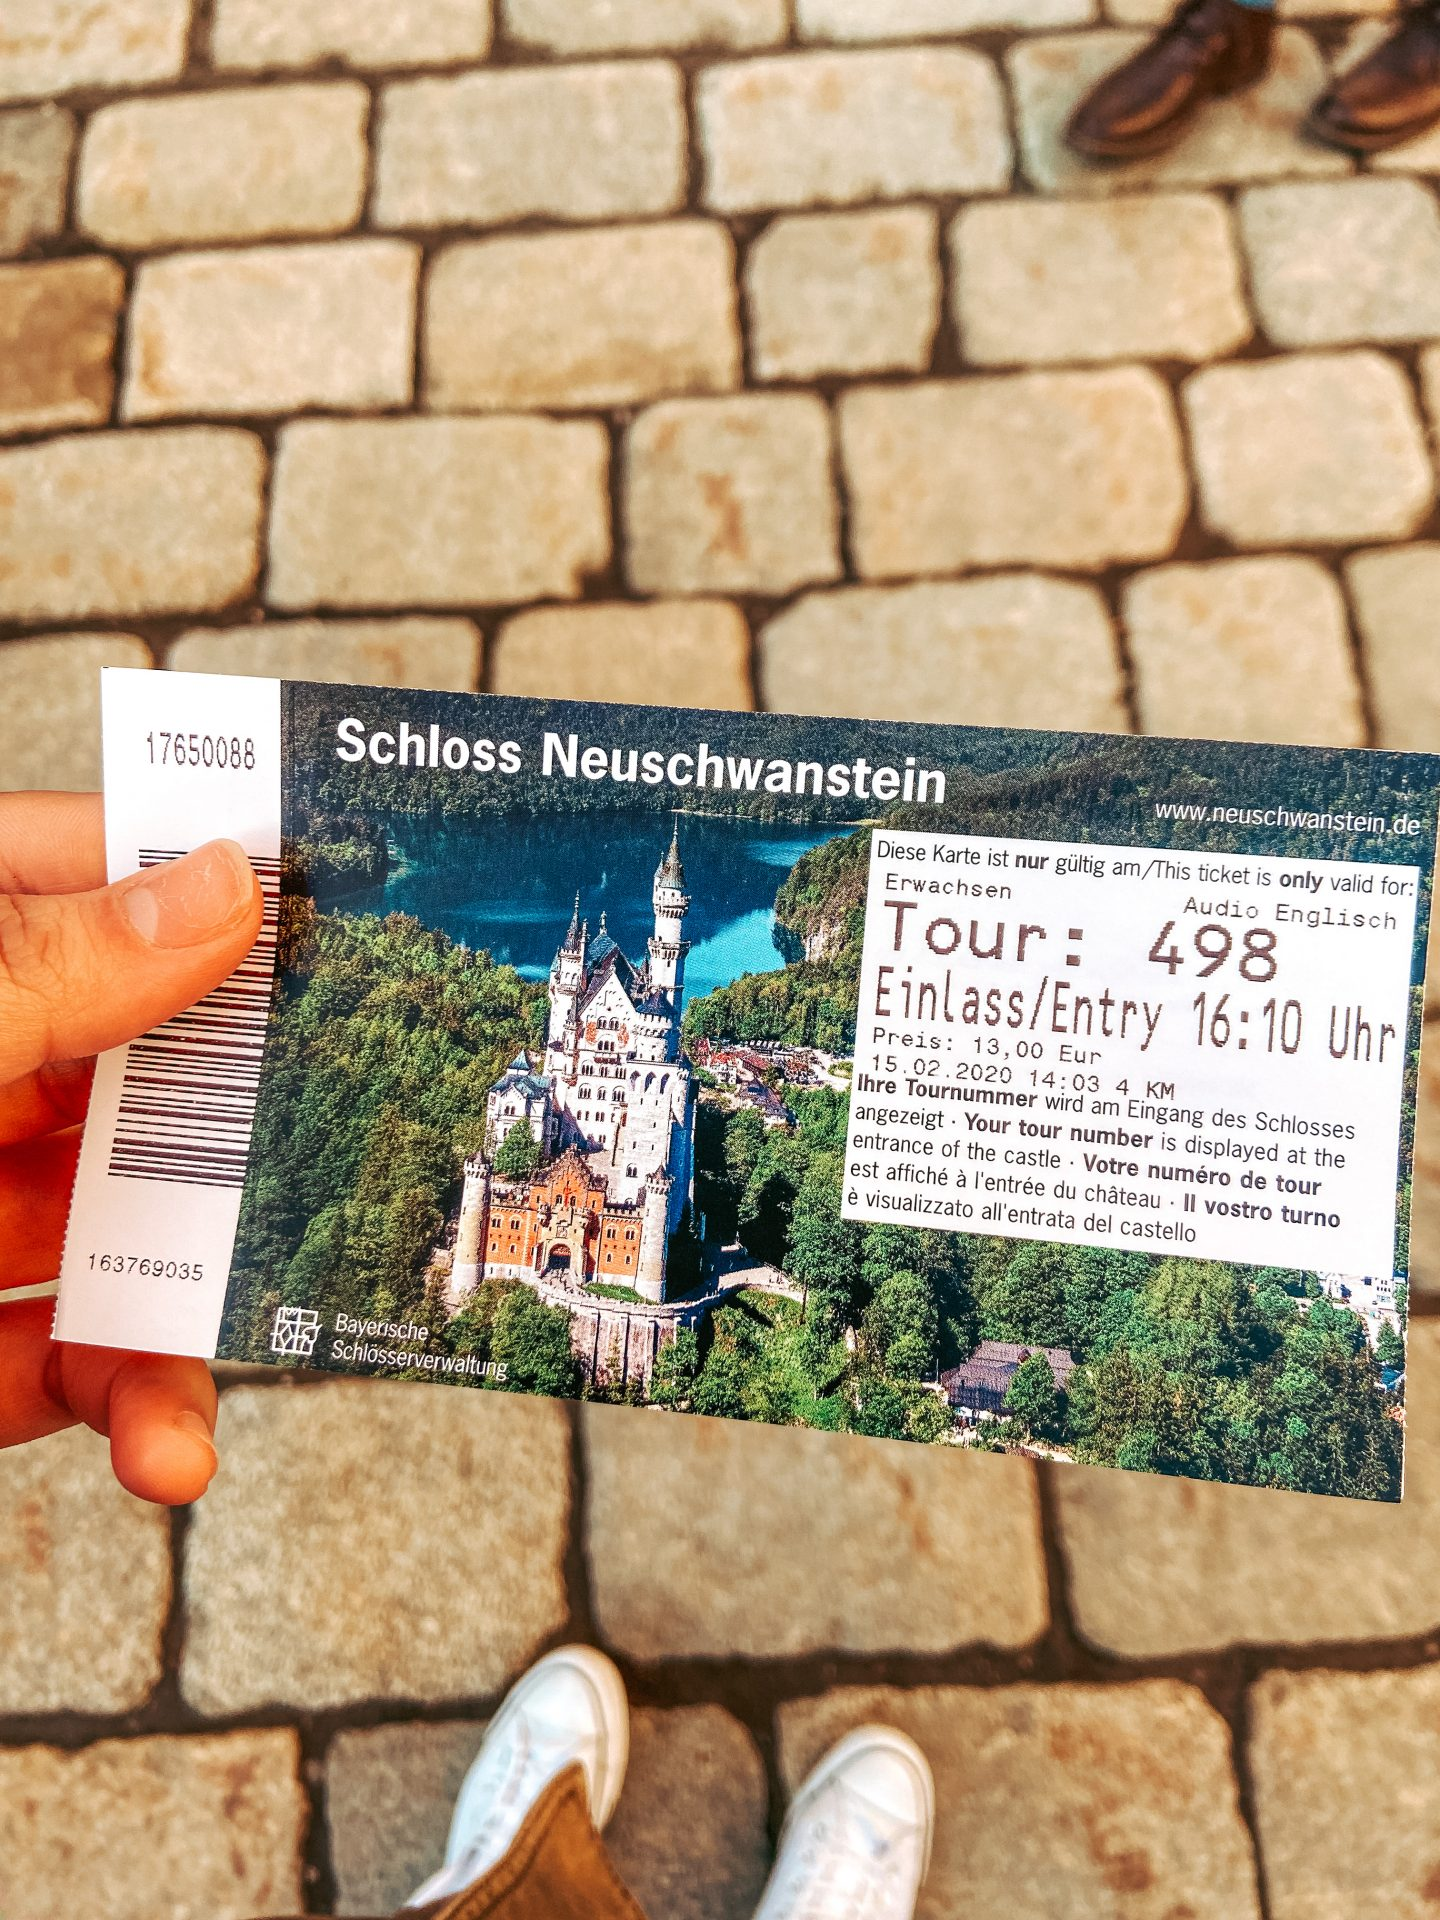 neuschwanstein-castle-ticket-information-price-germany-bavaria